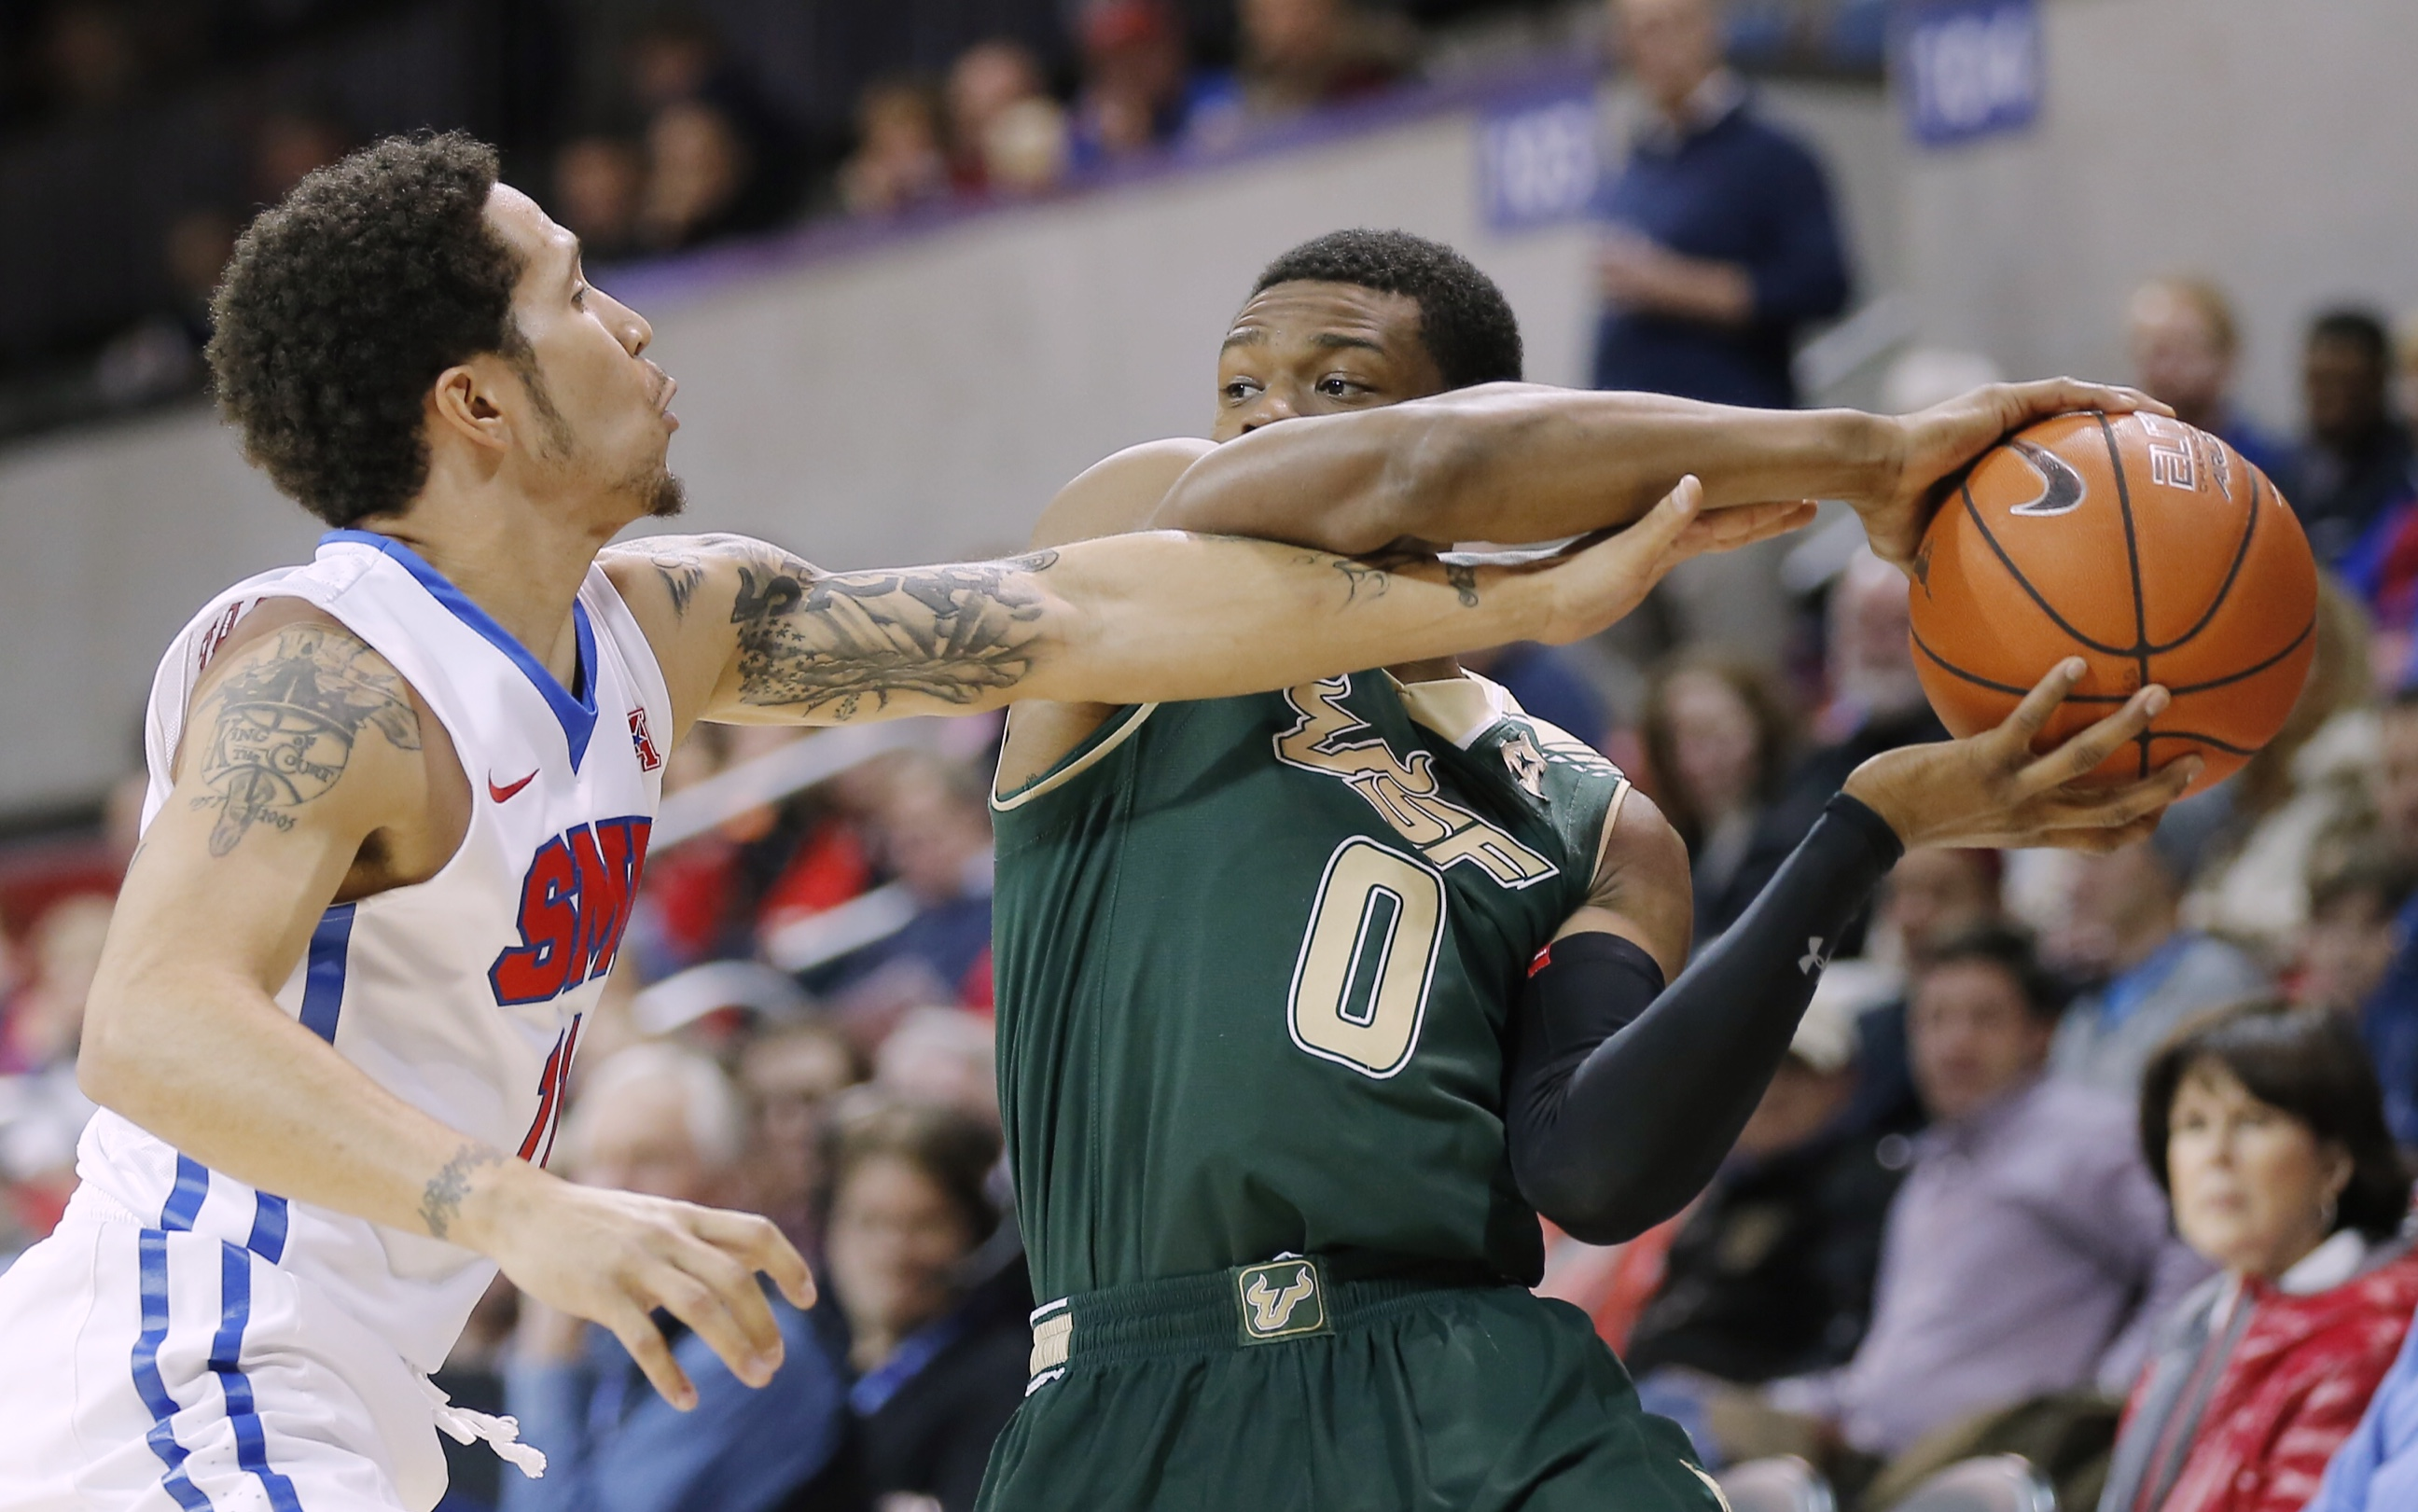 South Florida guard Jahmal McMurray (0) battles SMU guard Nic Moore (11) for space during the first half of an NCAA college basketball game Saturday, Jan. 2, 2016, in Dallas. SMU won 72-58. (AP Photo/Brandon Wade)